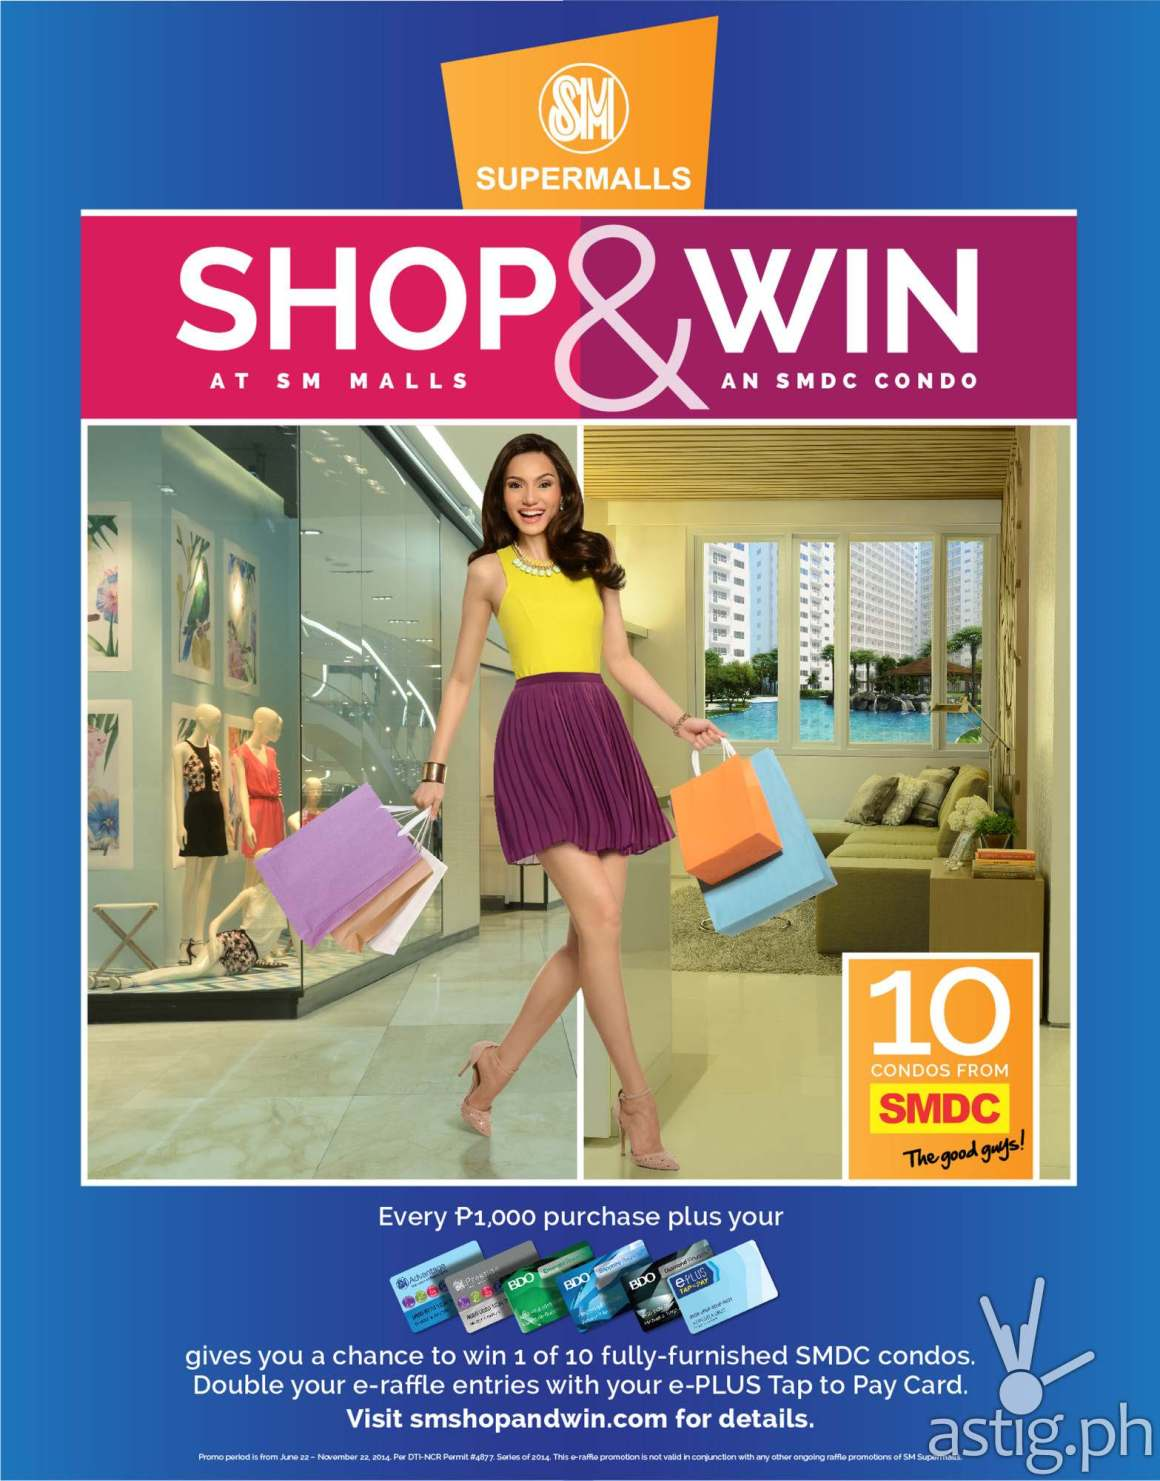 SM Supermalls Shop & Win promo